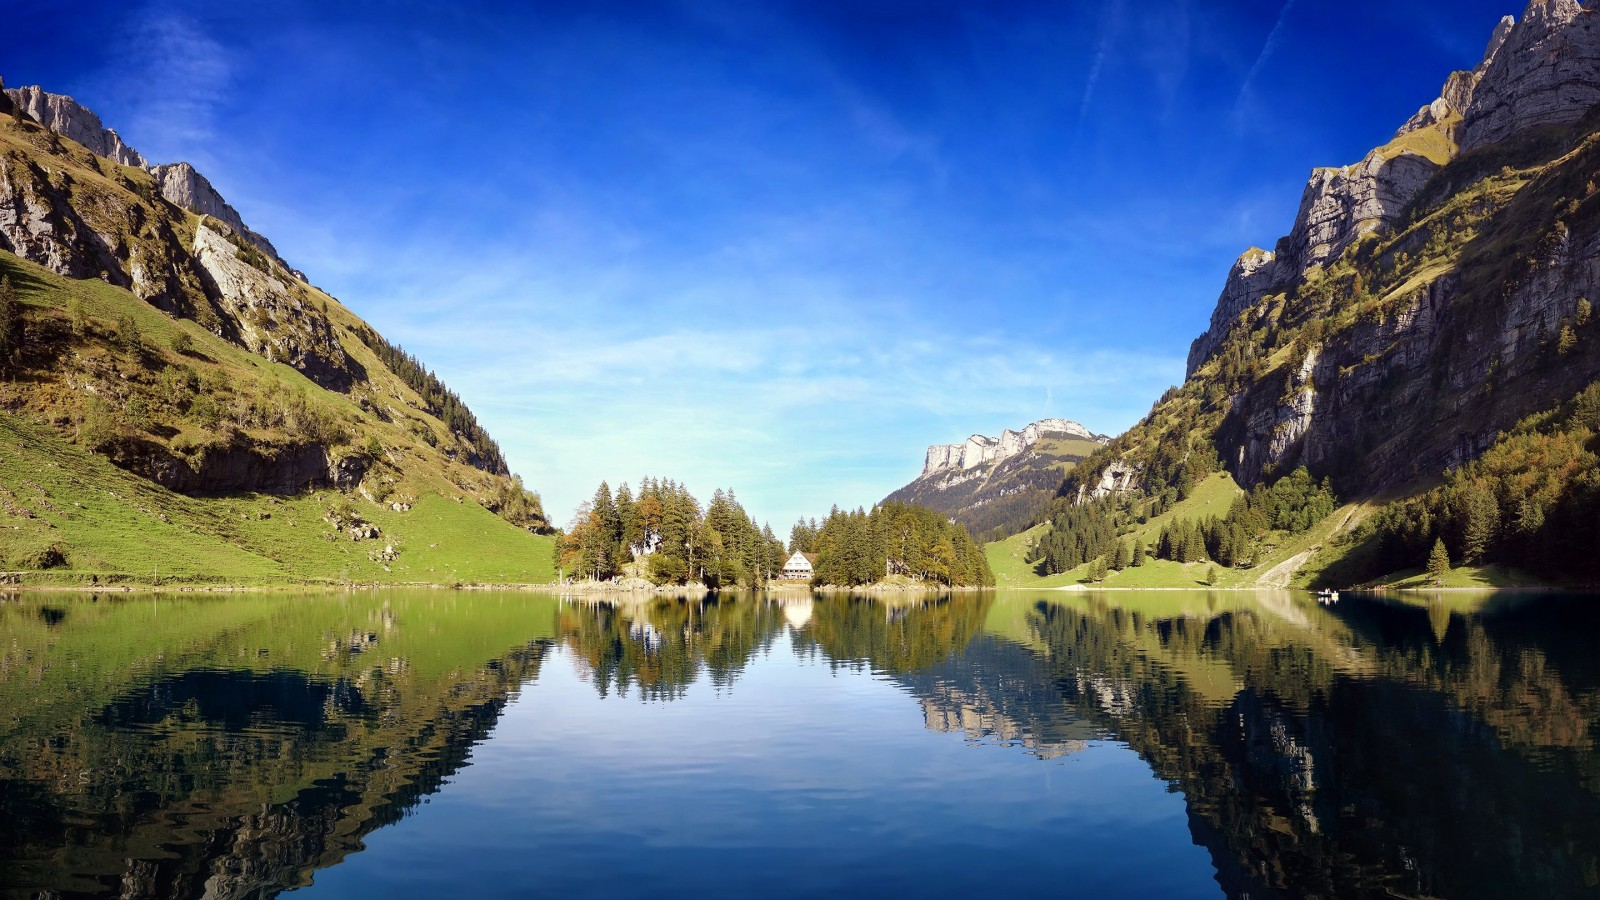 Seealpsee lake in Switzerland Wallpaper for Desktop 1600x900